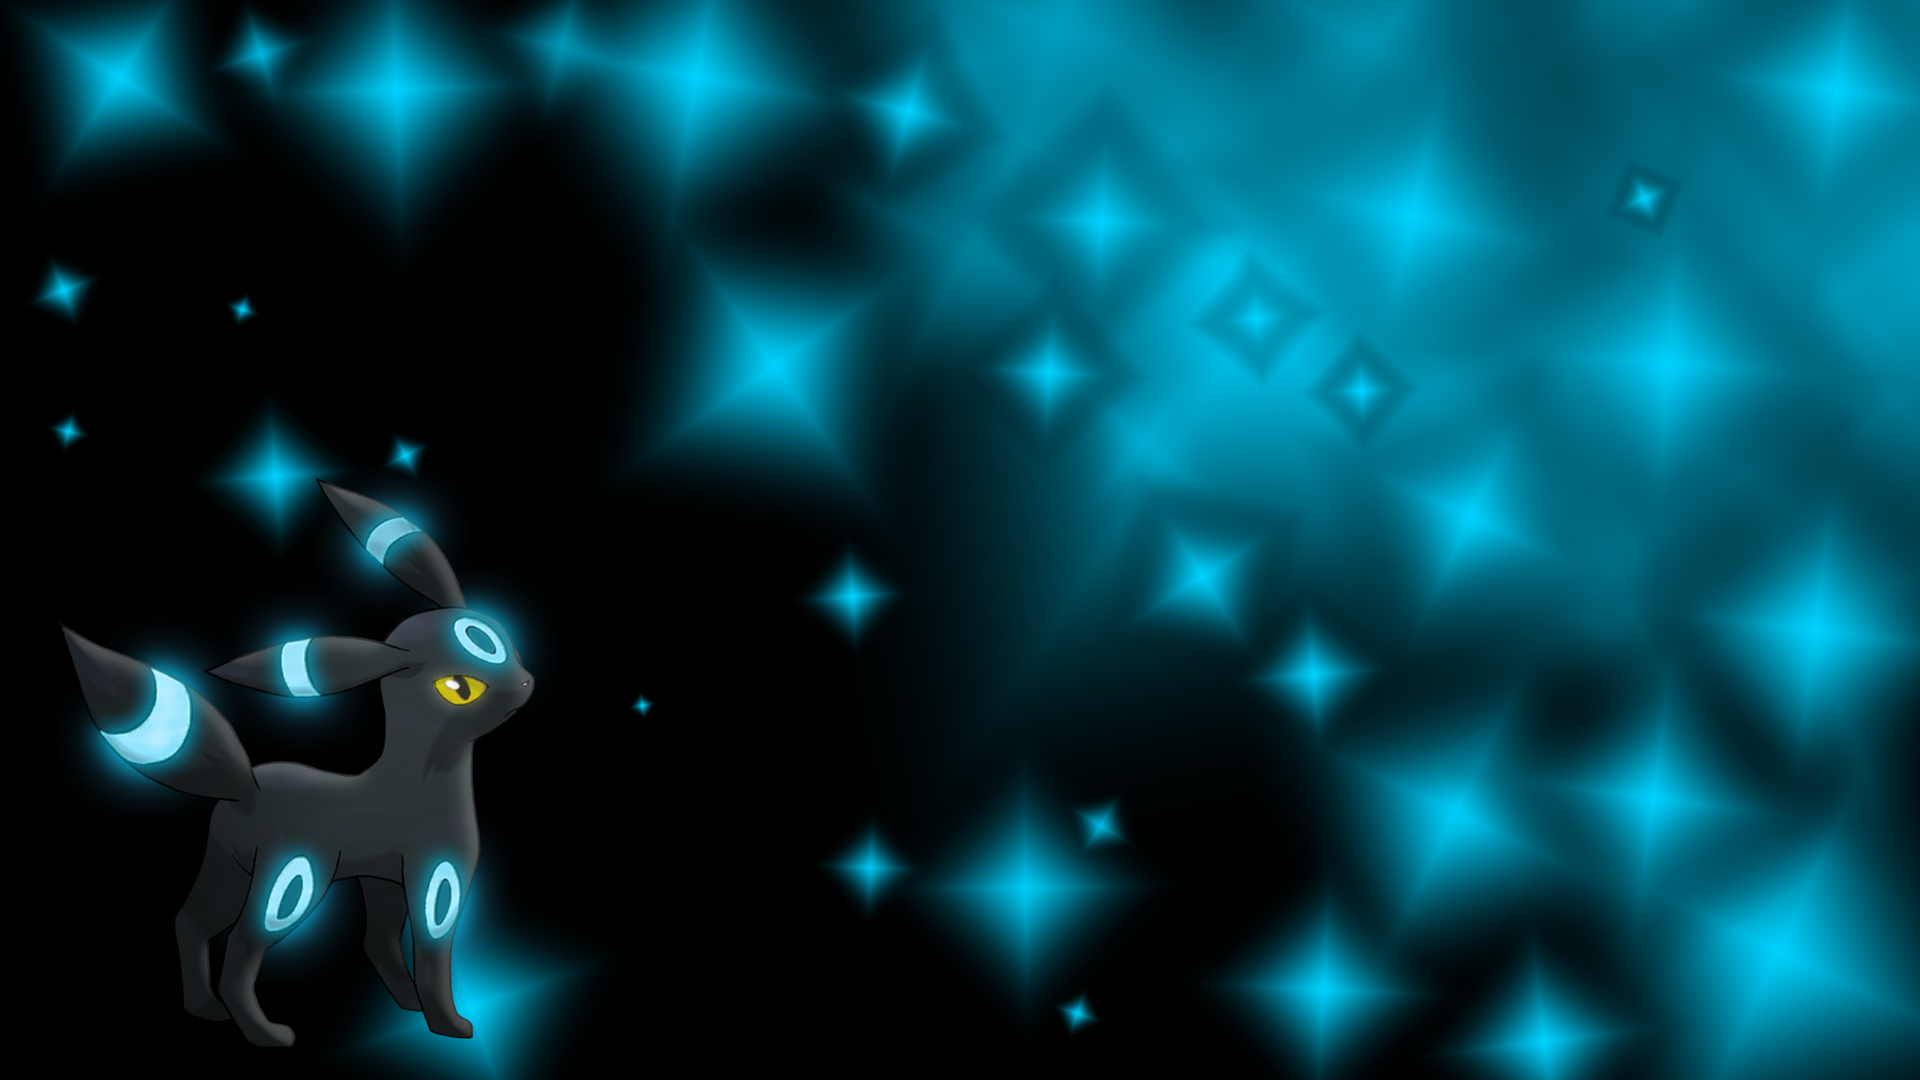 Umbreon Wallpaper by Trikk117 on DeviantArt